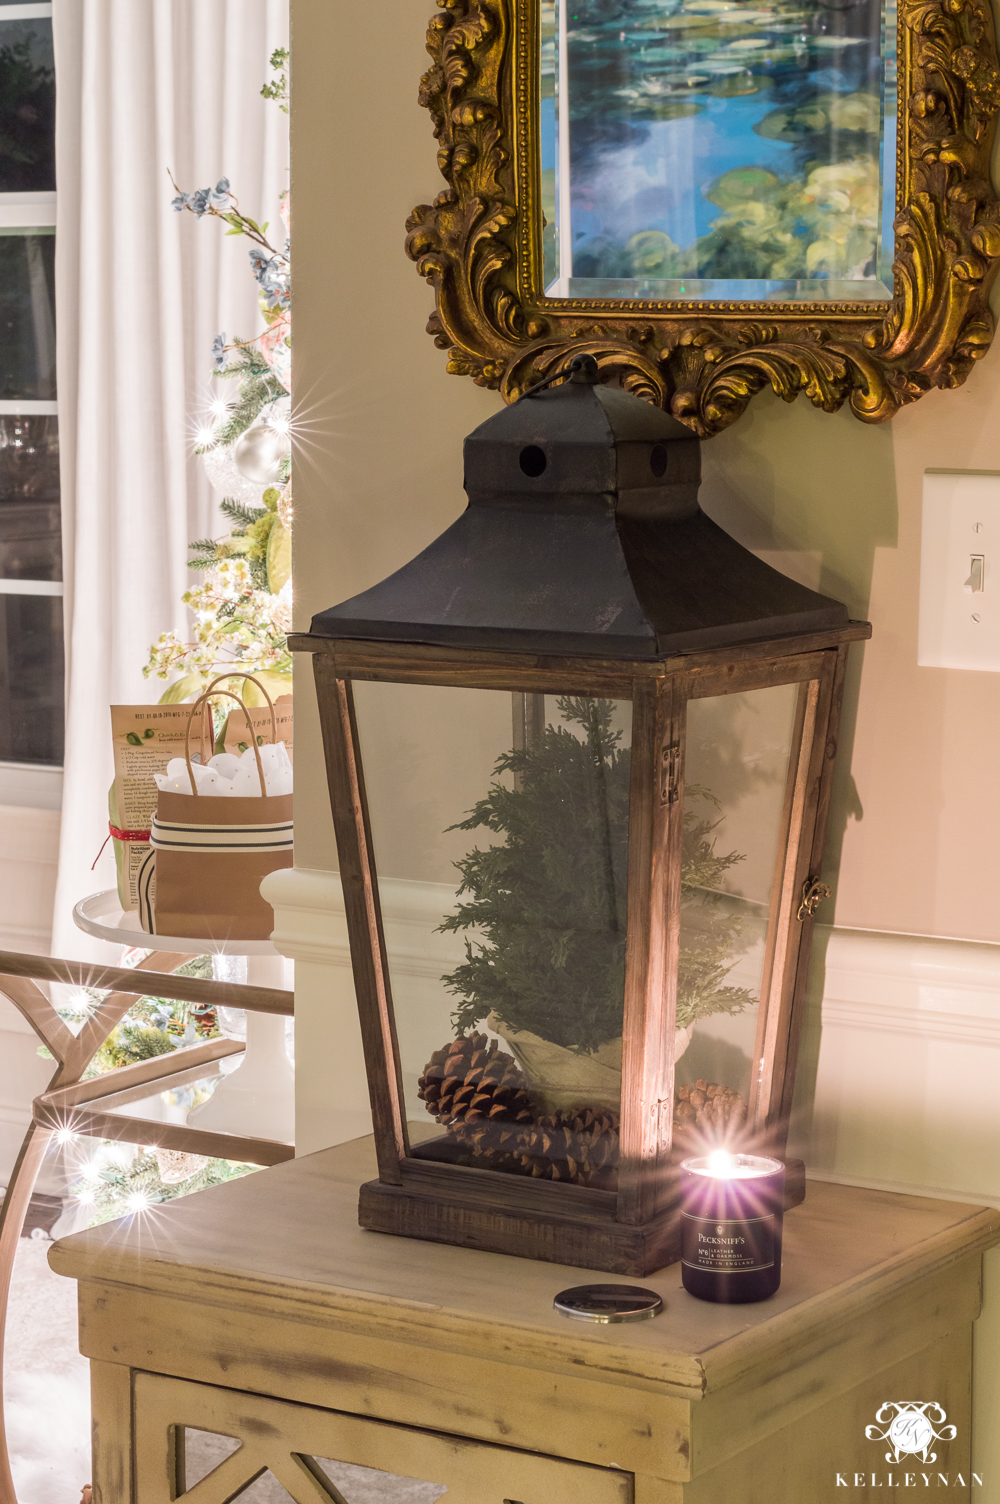 Foyer table lantern at night